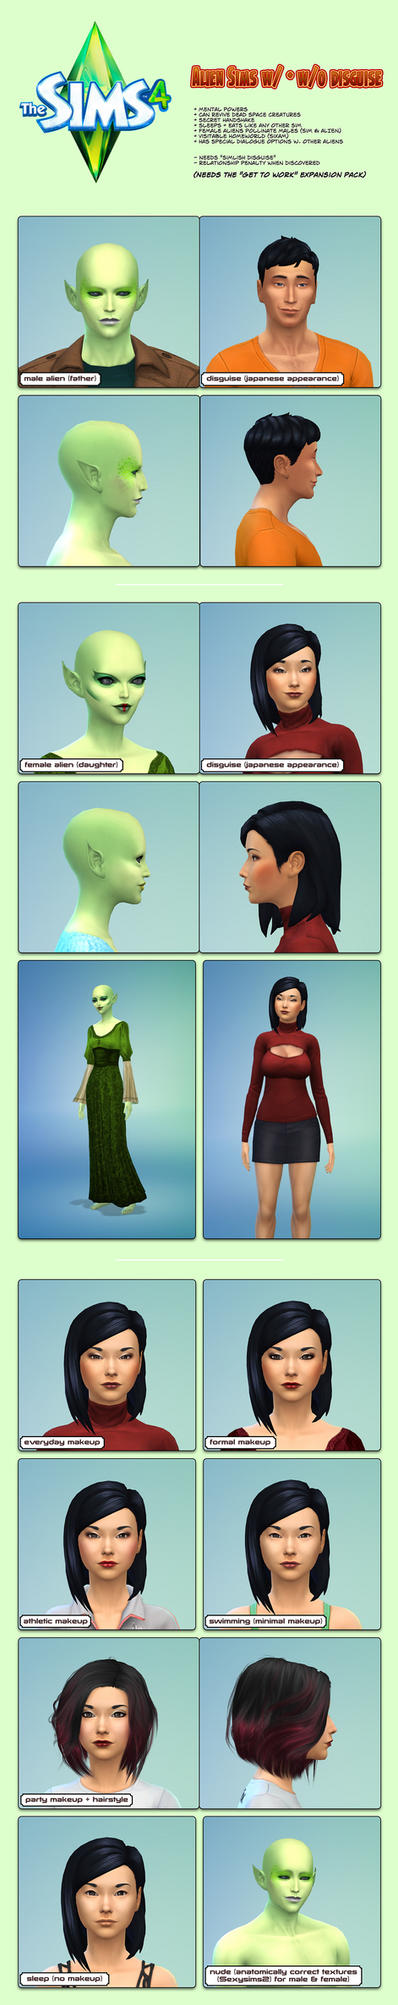 3d mosters and aliens sec the sims nsfw streaming